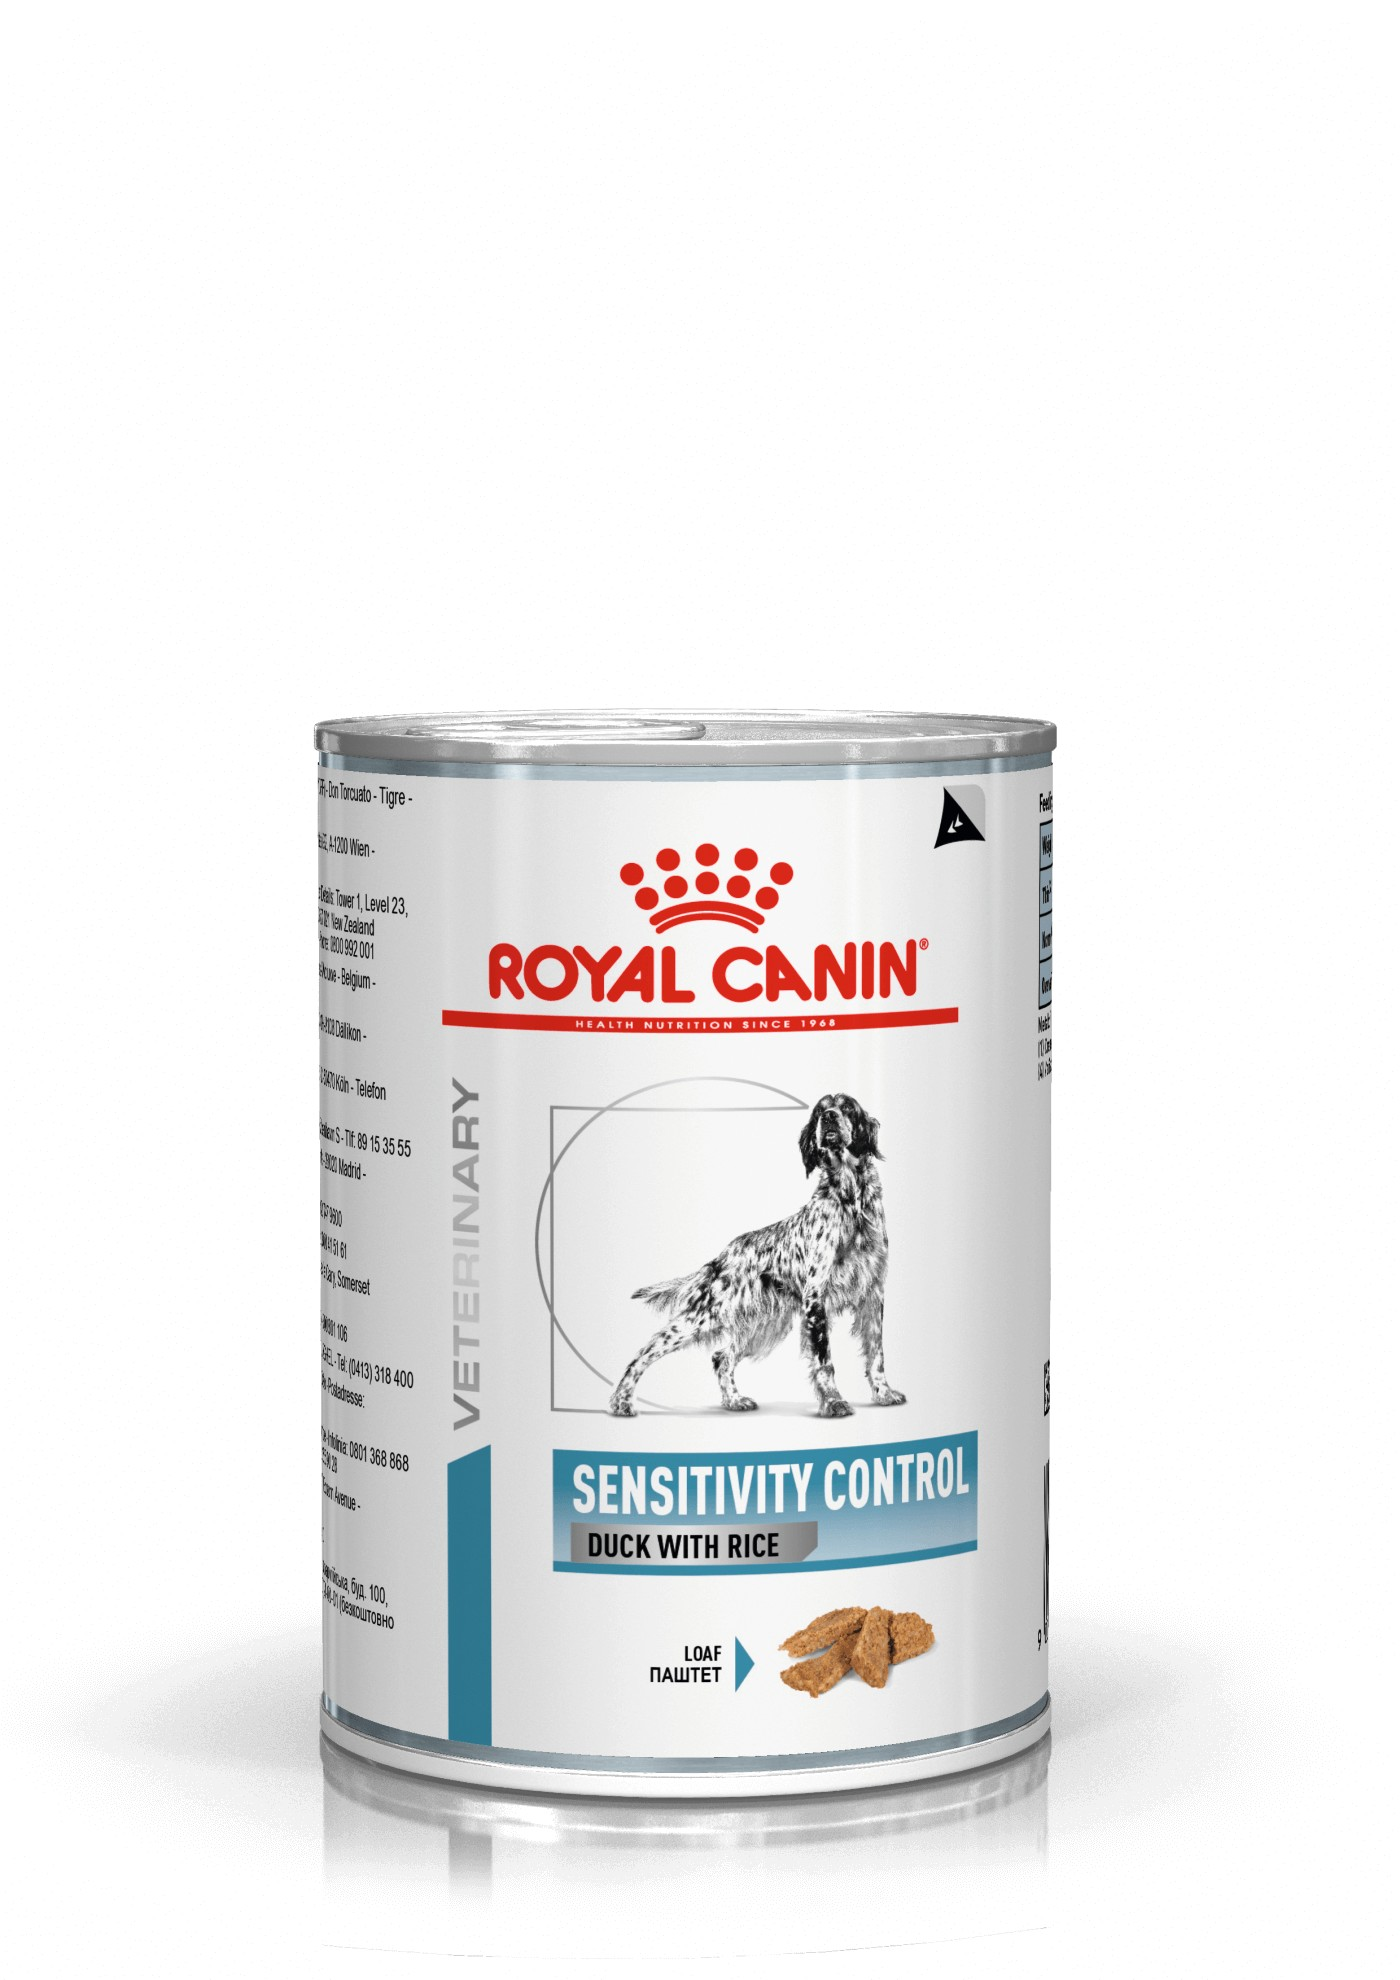 Royal Canin Veterinary Sensitivity Control and & ris hundefoder dåse